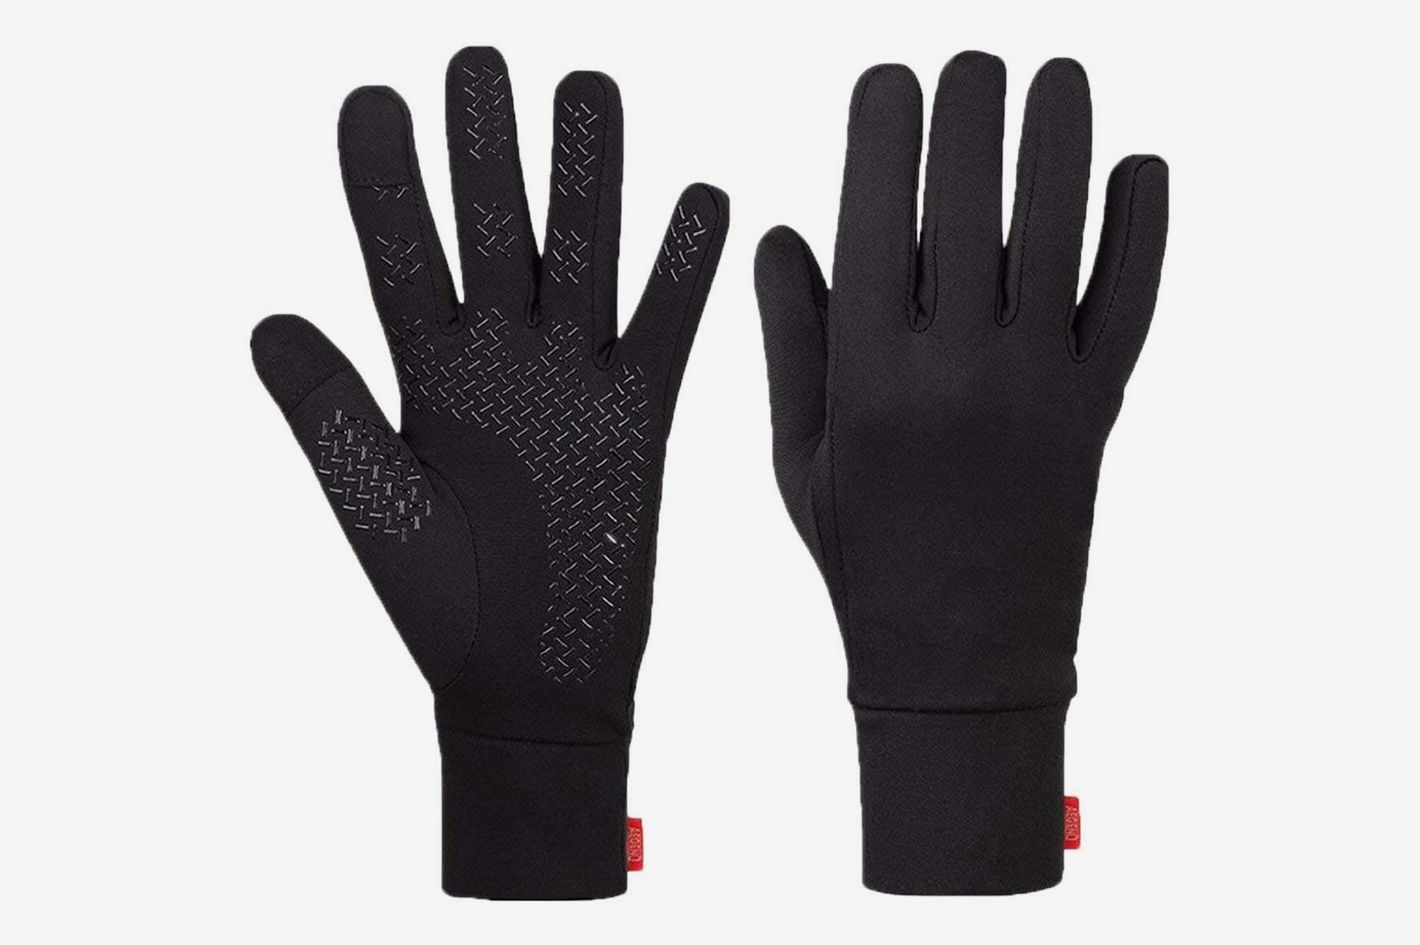 Aegend Lightweight Touchscreen Running and Cycling Gloves